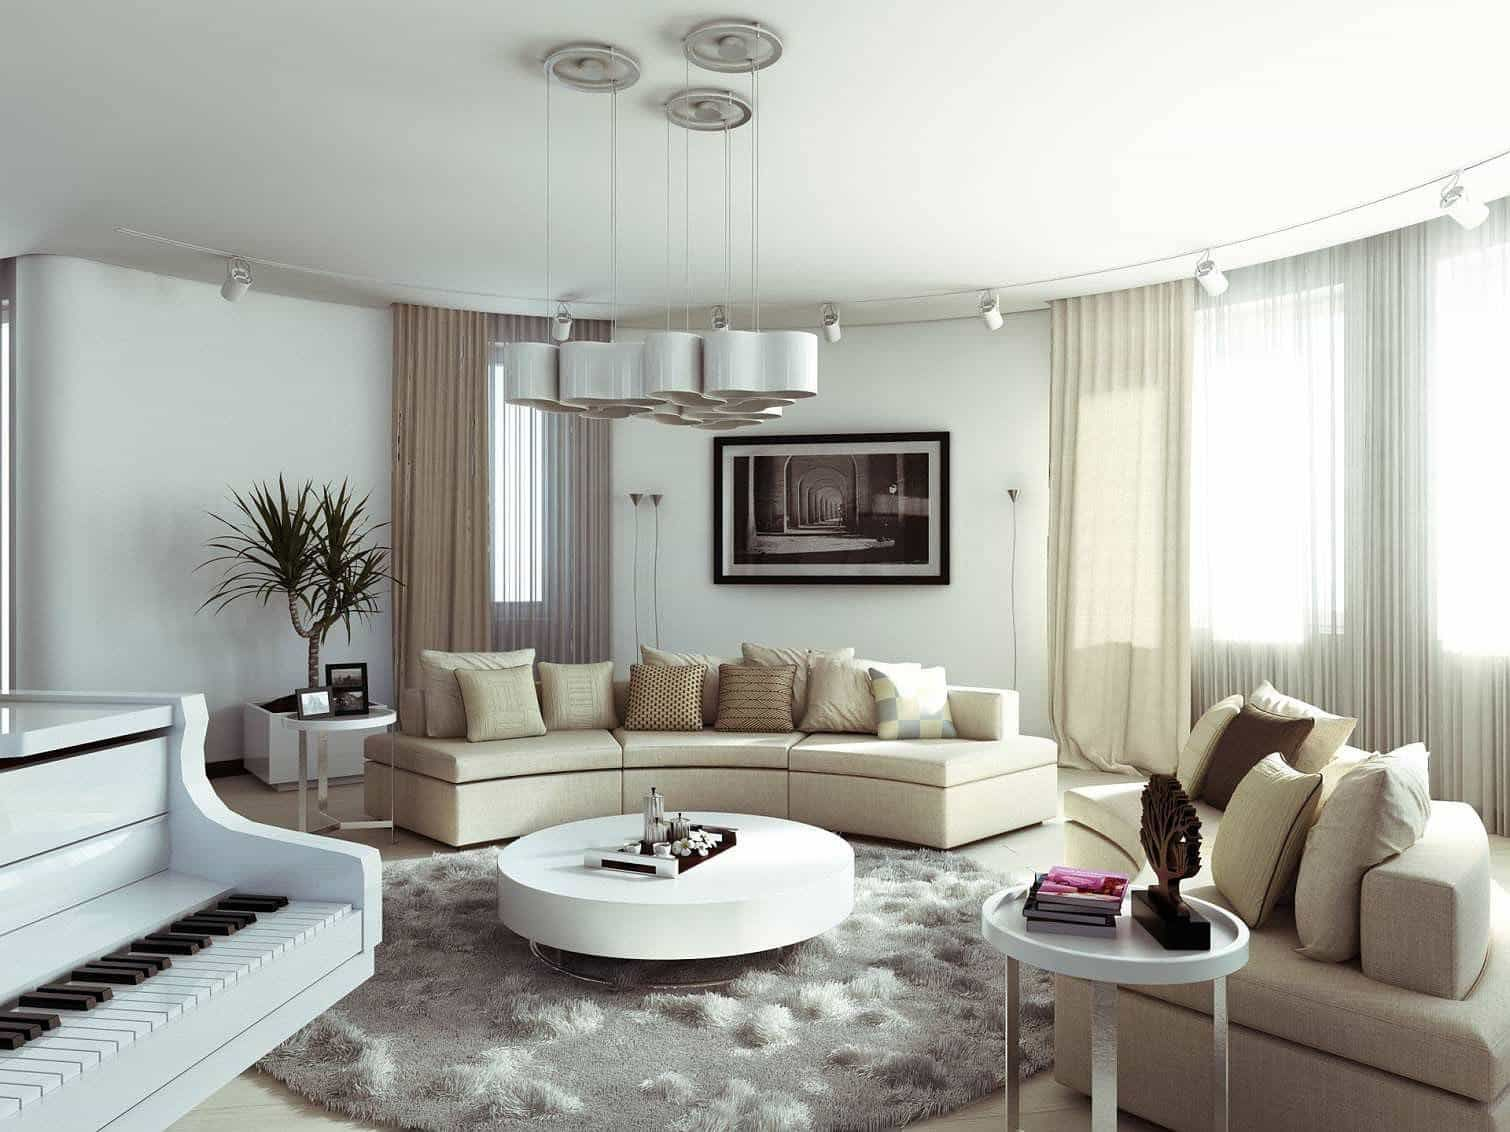 Enhance Your Room With Round Area Rugs With Images Round